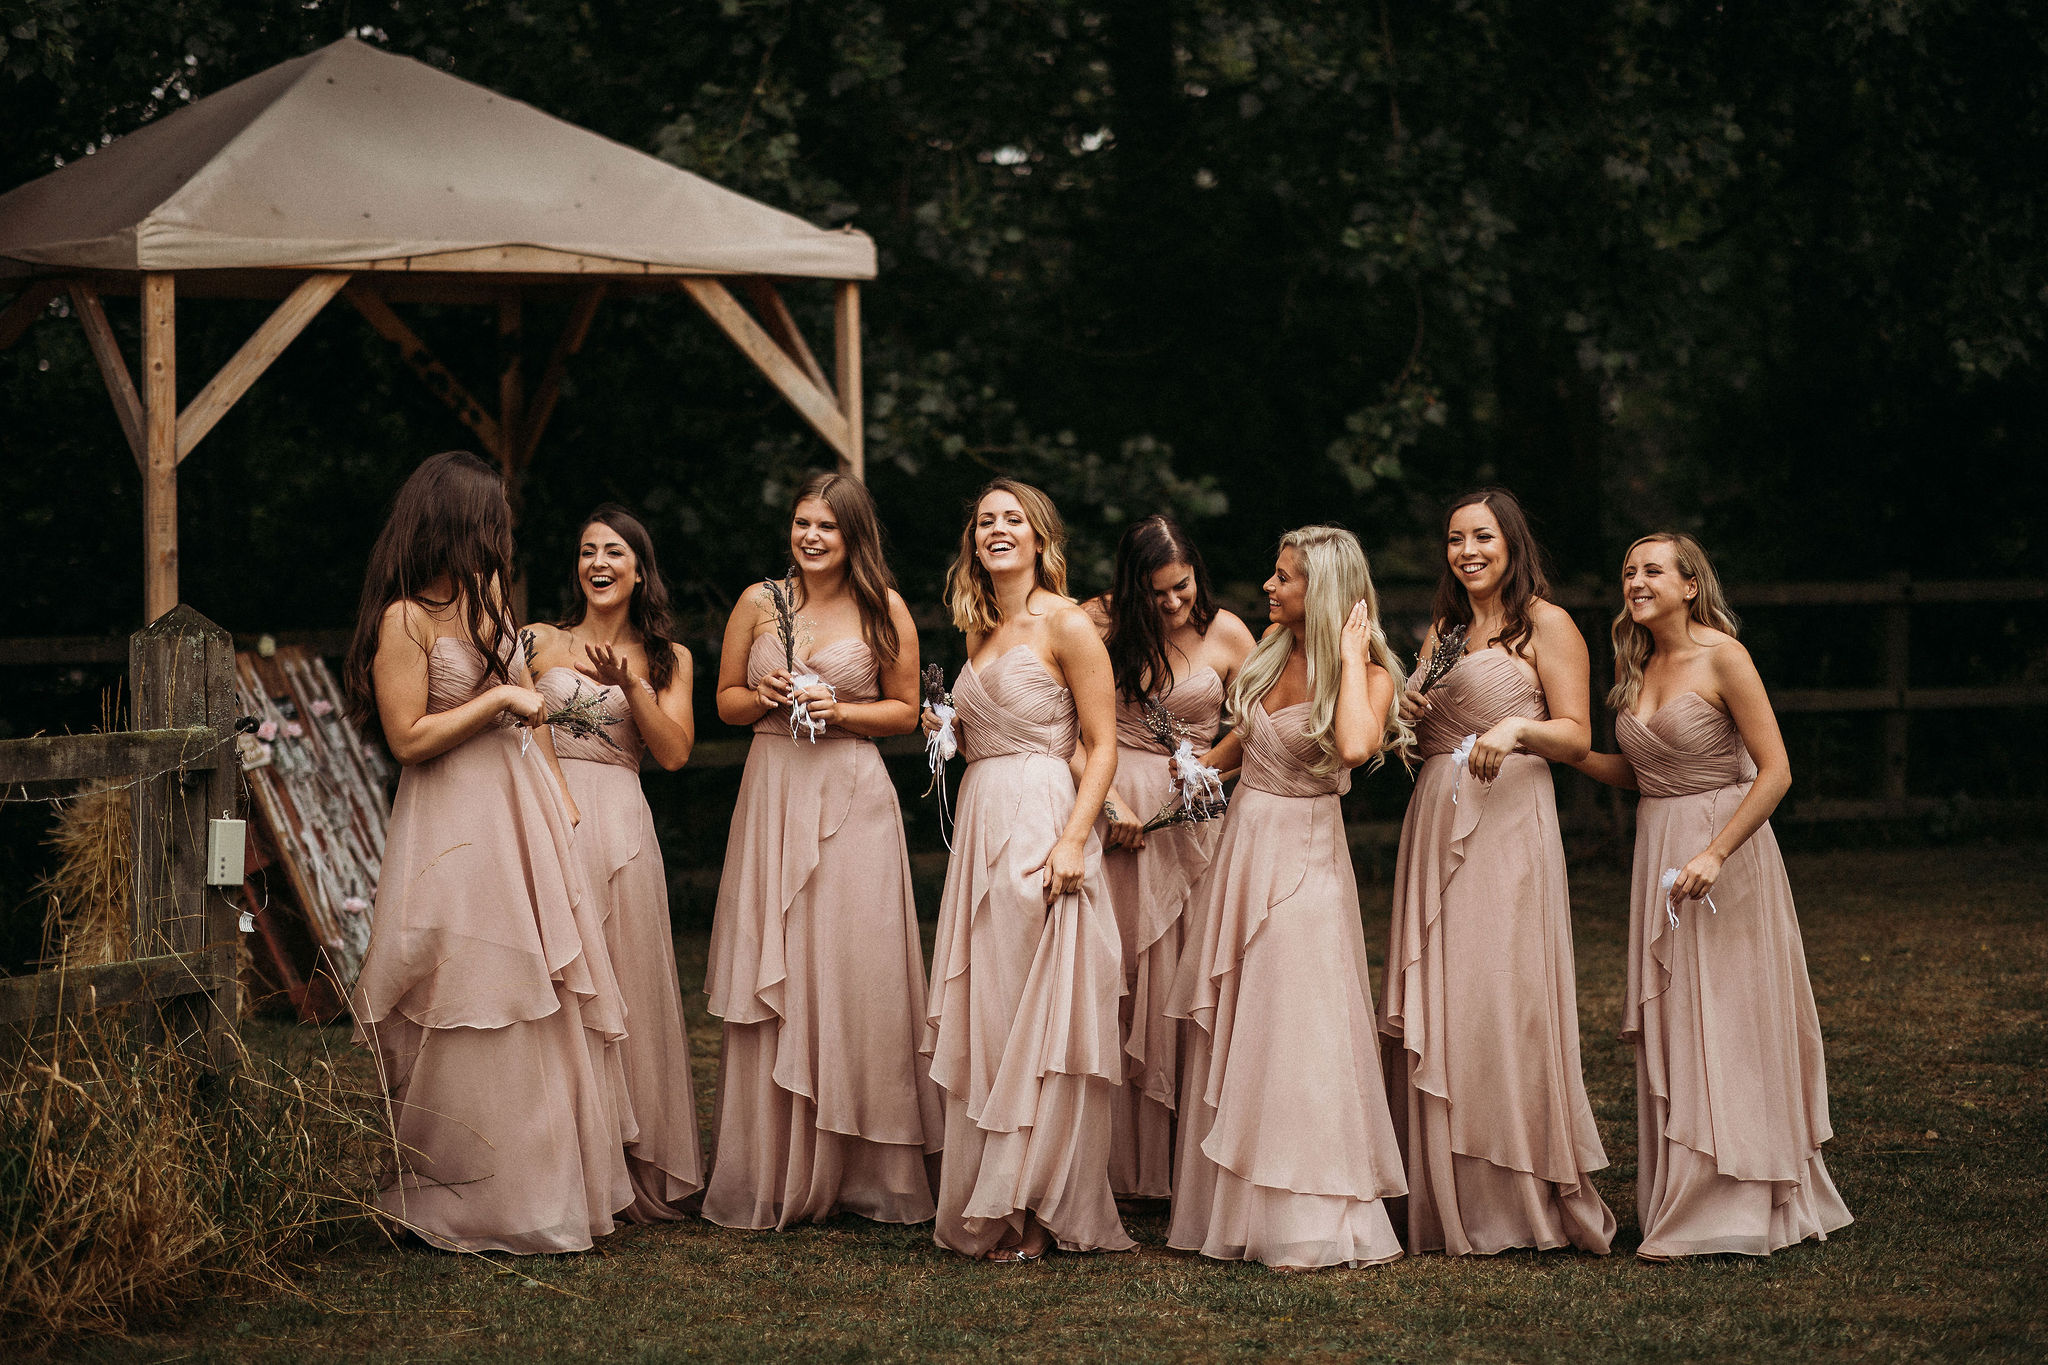 Bridesmaids in dusky pink dresses